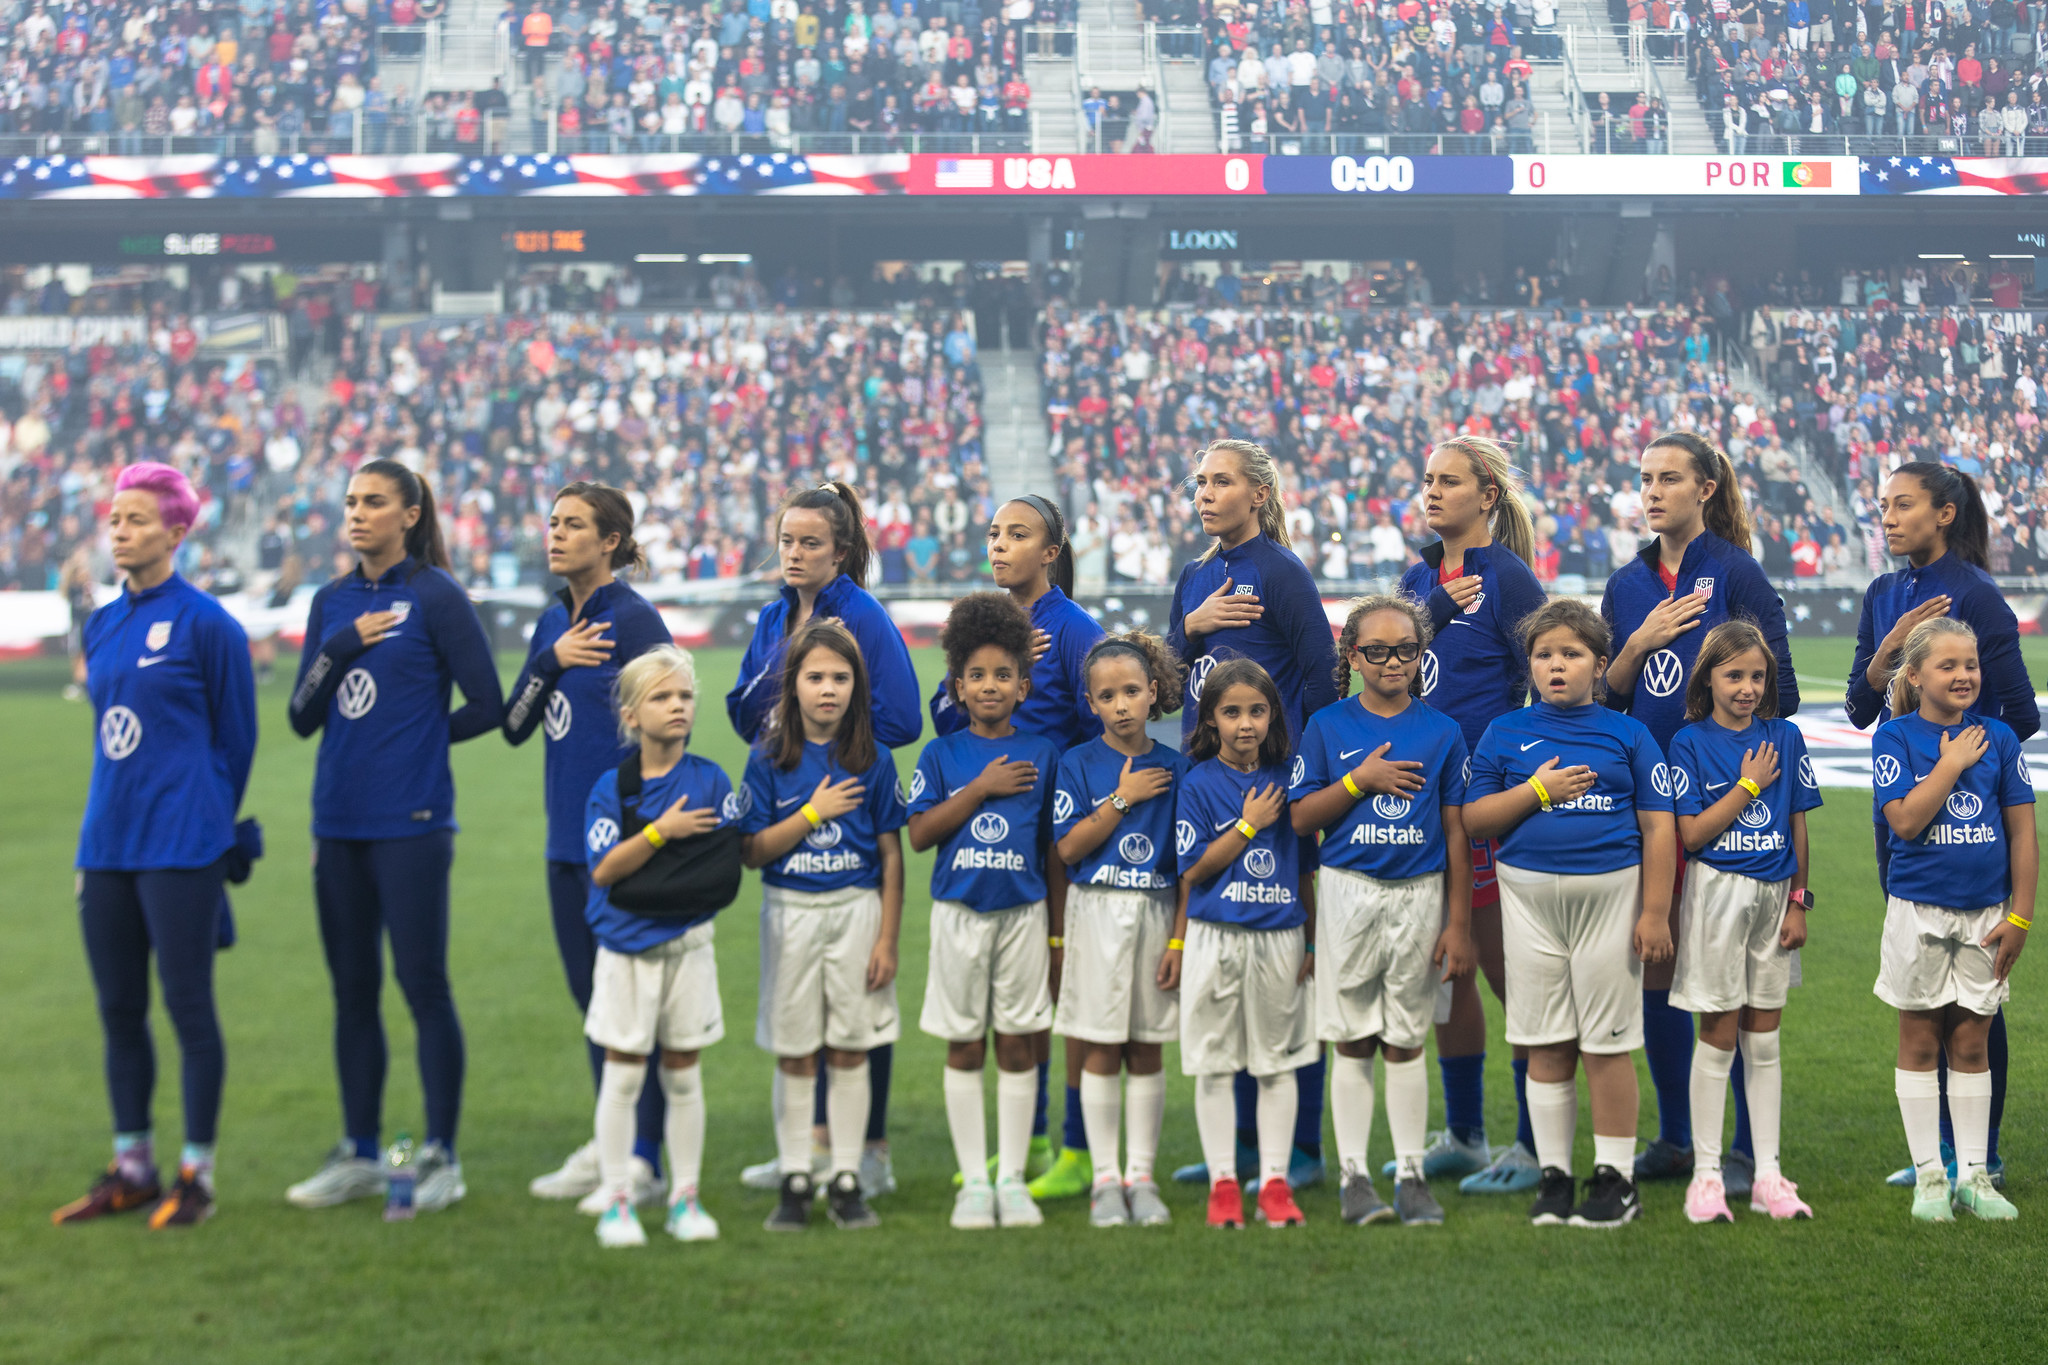 Team USA stands for the National Anthem before the match with young soccer players